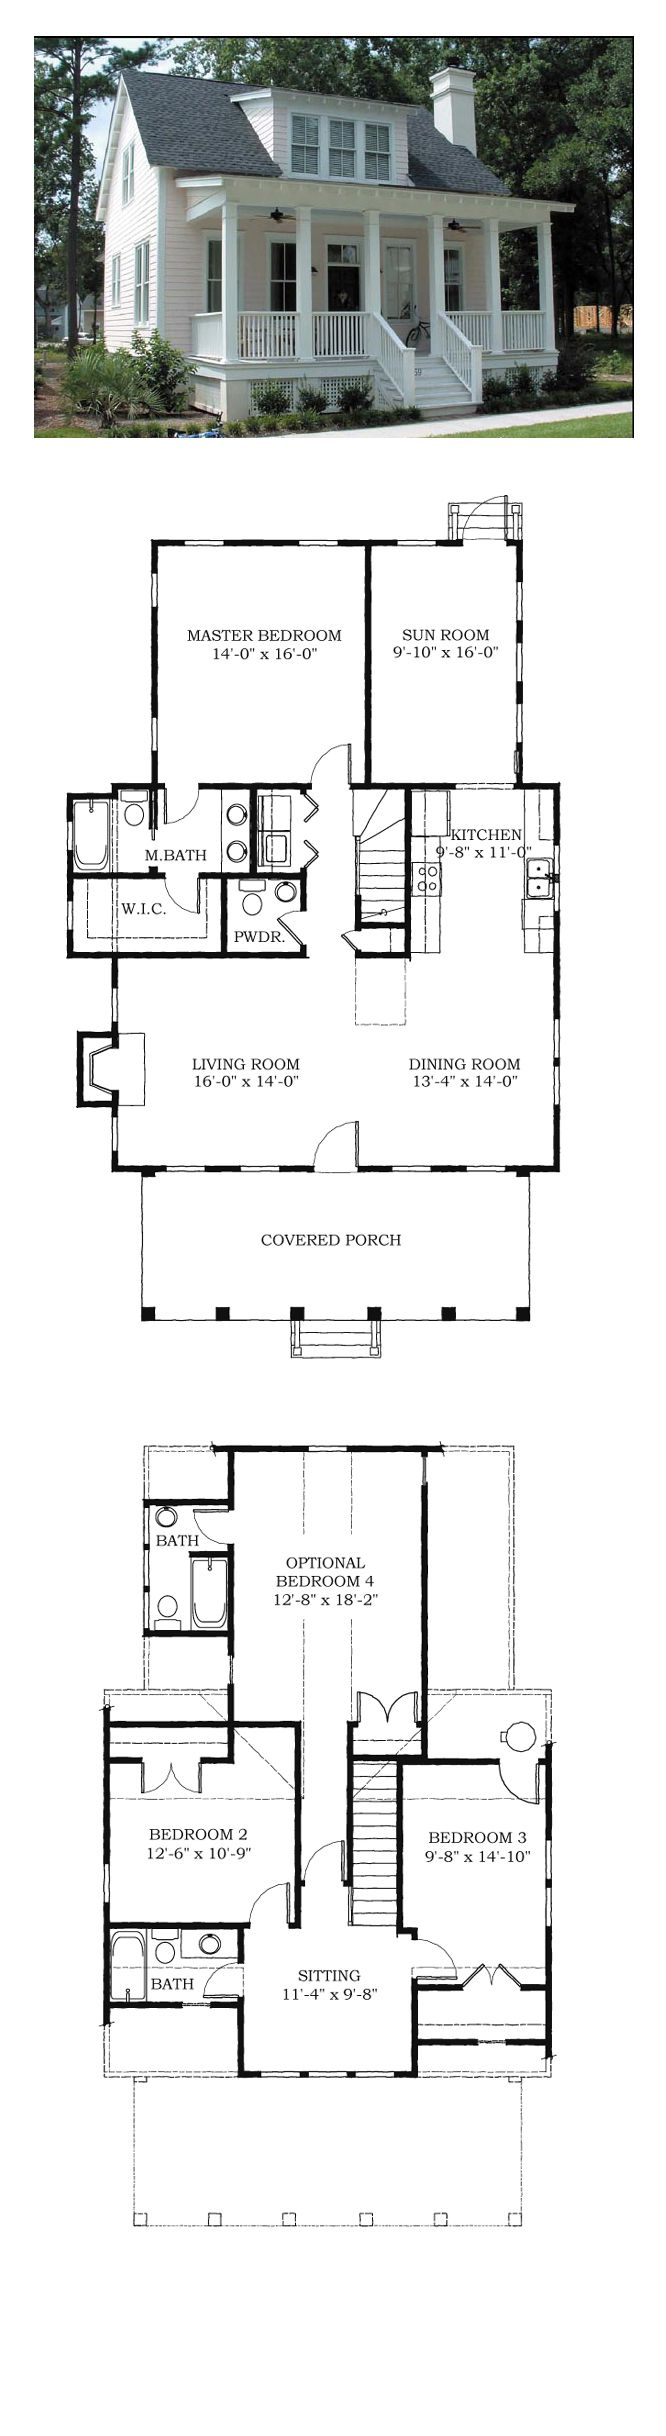 Cool 17 Best Ideas About Small House Plans On Pinterest Small House Largest Home Design Picture Inspirations Pitcheantrous